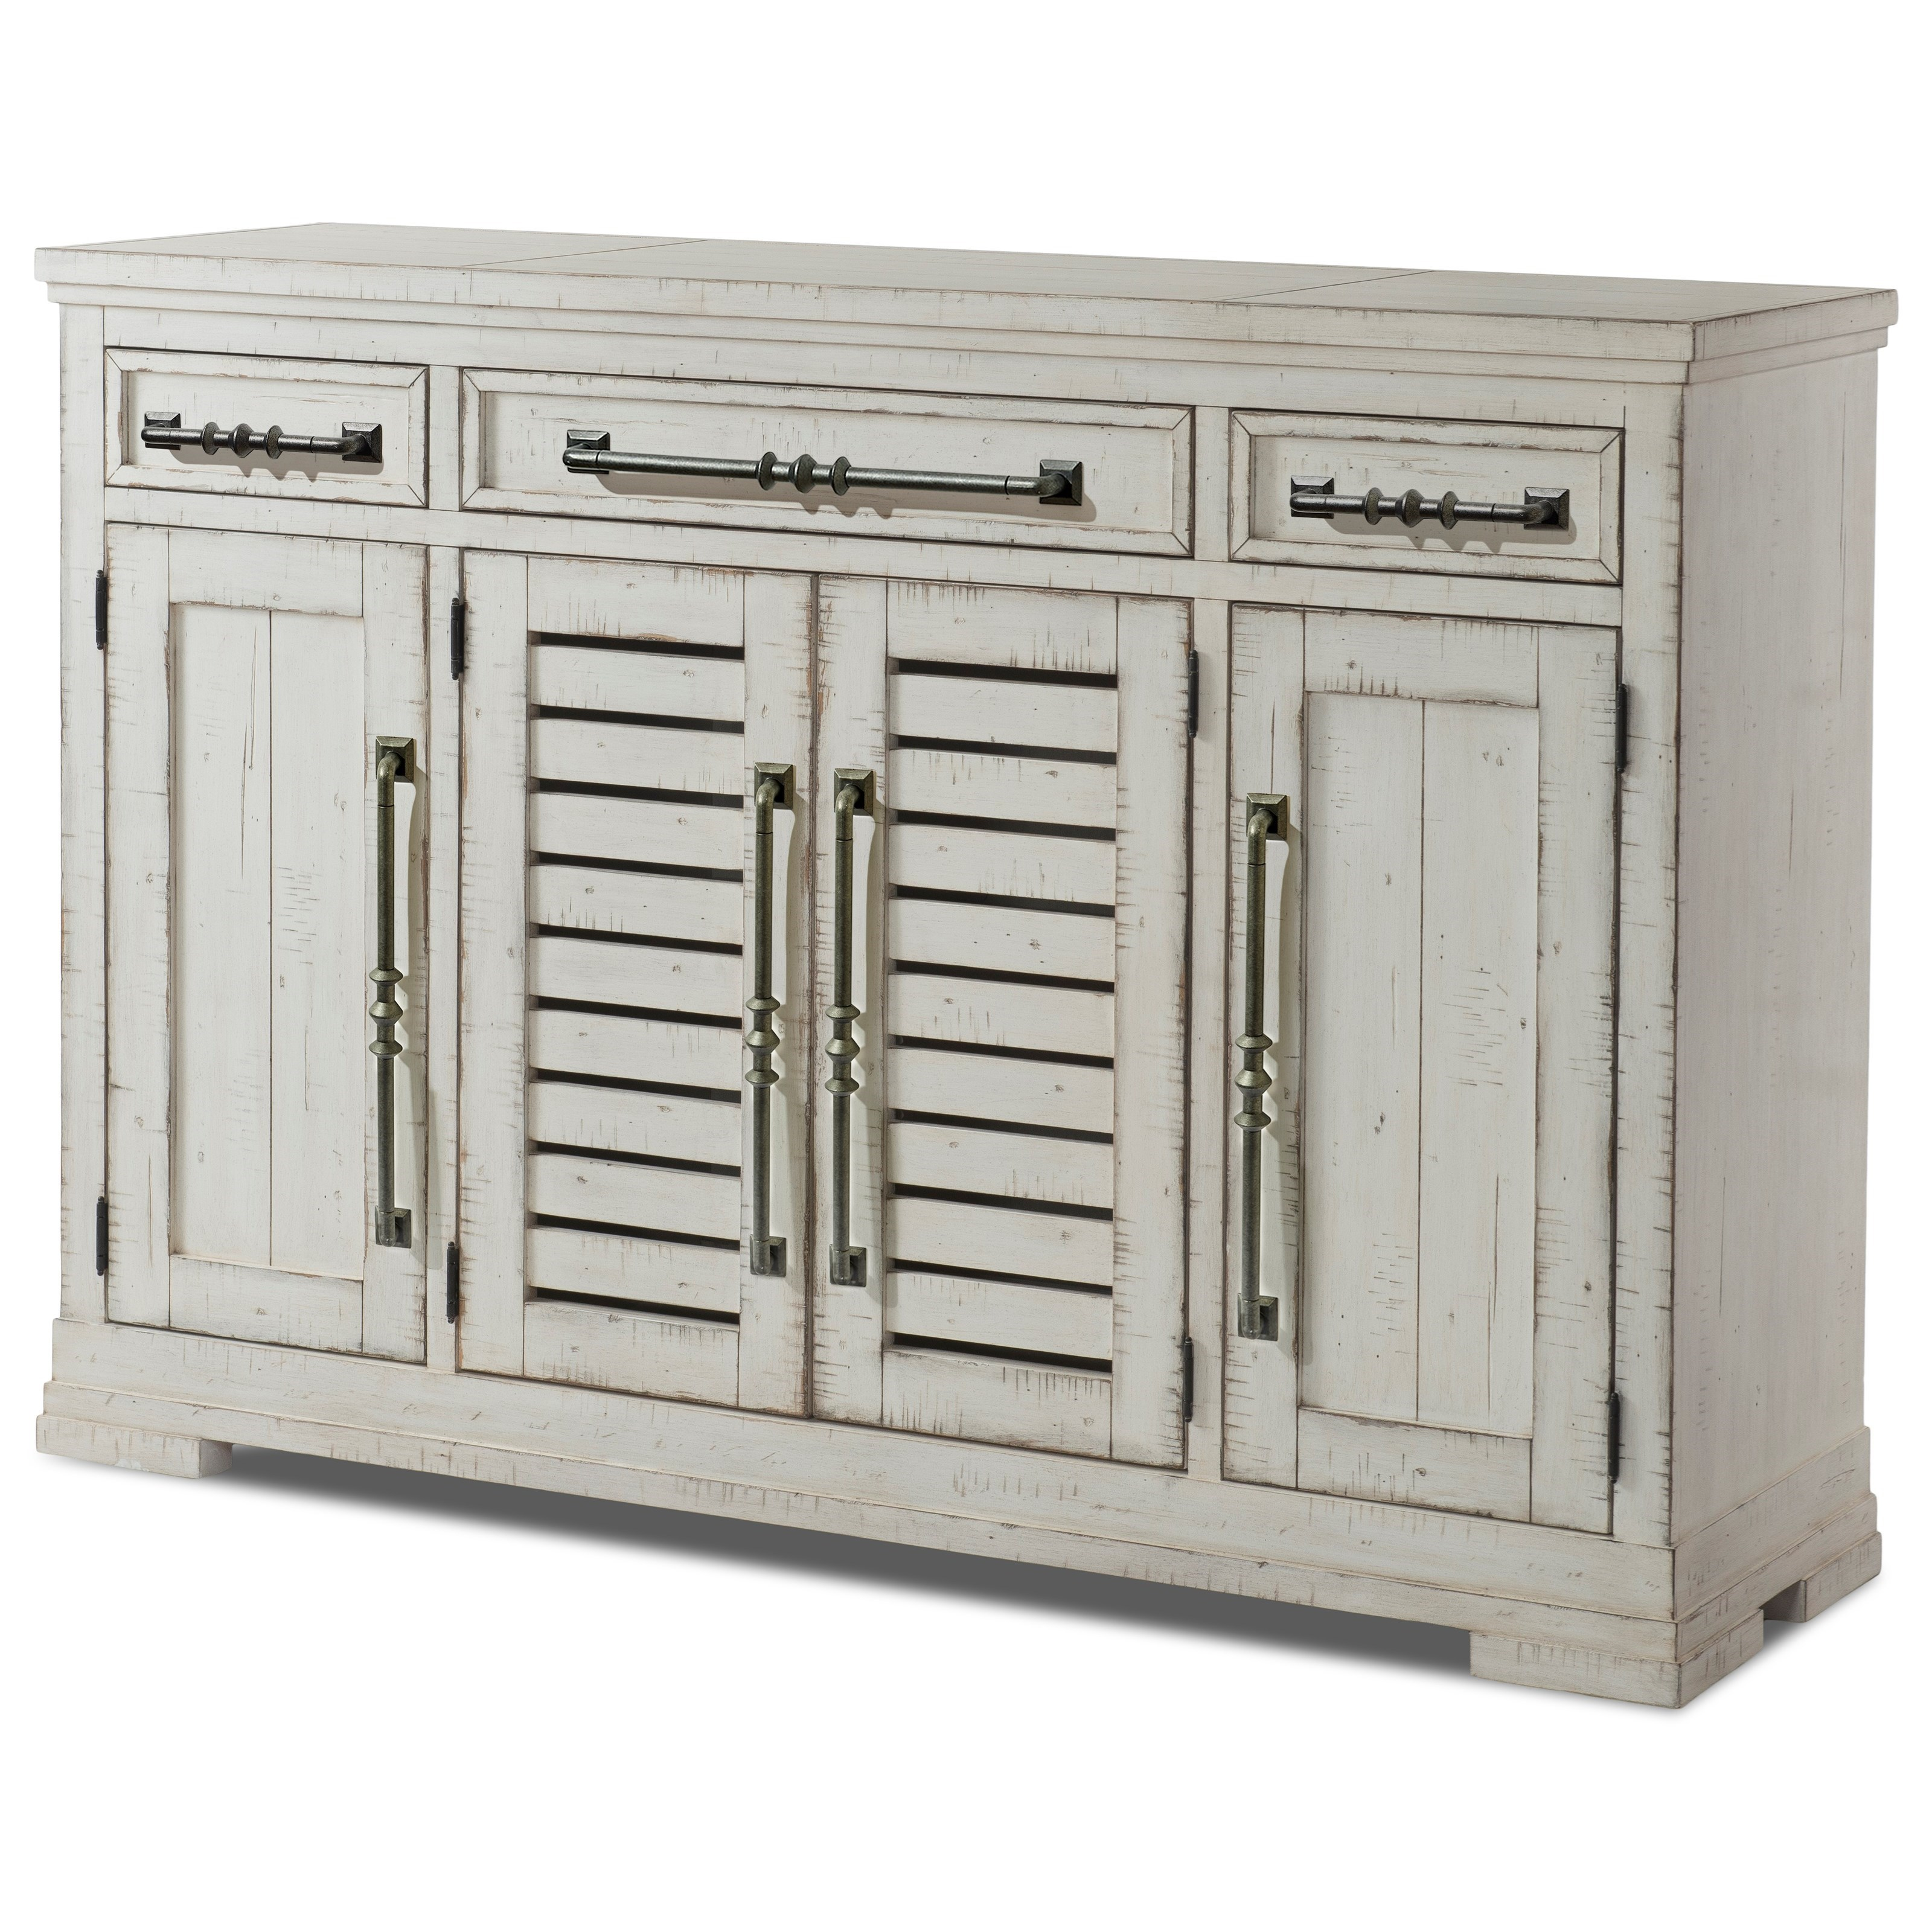 Coming Home Hospitality Server by Trisha Yearwood Home Collection by Klaussner at Sam Levitz Furniture